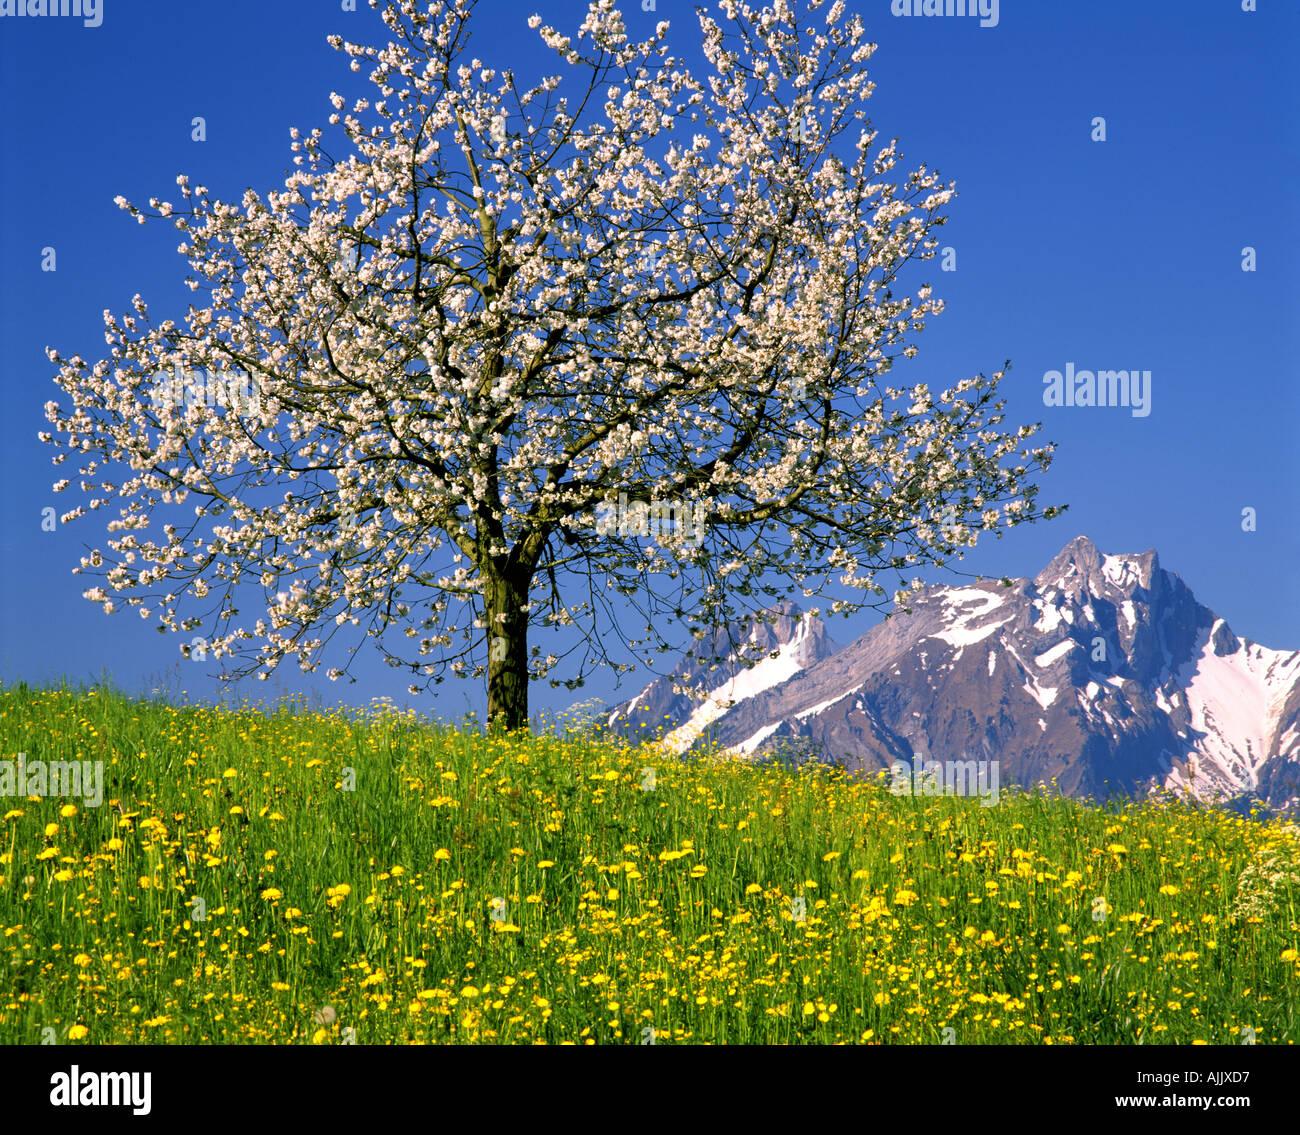 CH - LUCERNE: Cherry Blossoms and Pilatus Mountain - Stock Image